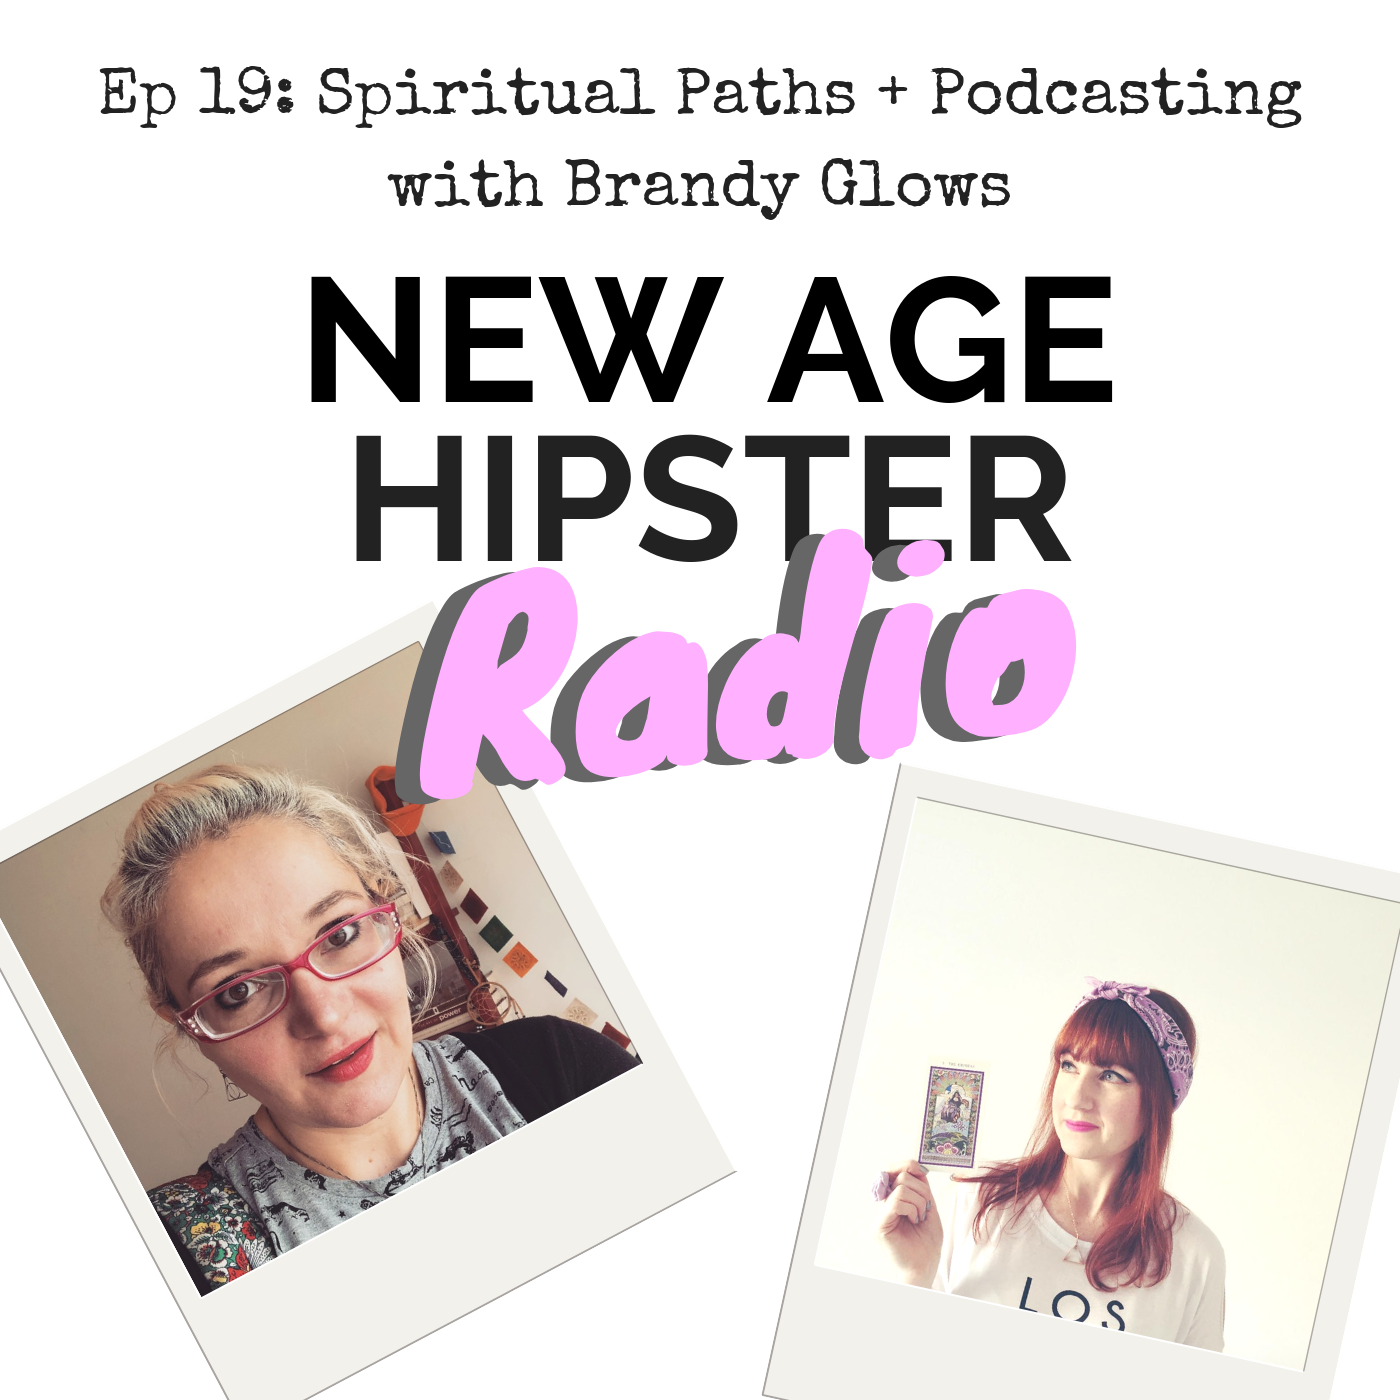 New Age Hipster Radio Ep 19 with Brandy Glows